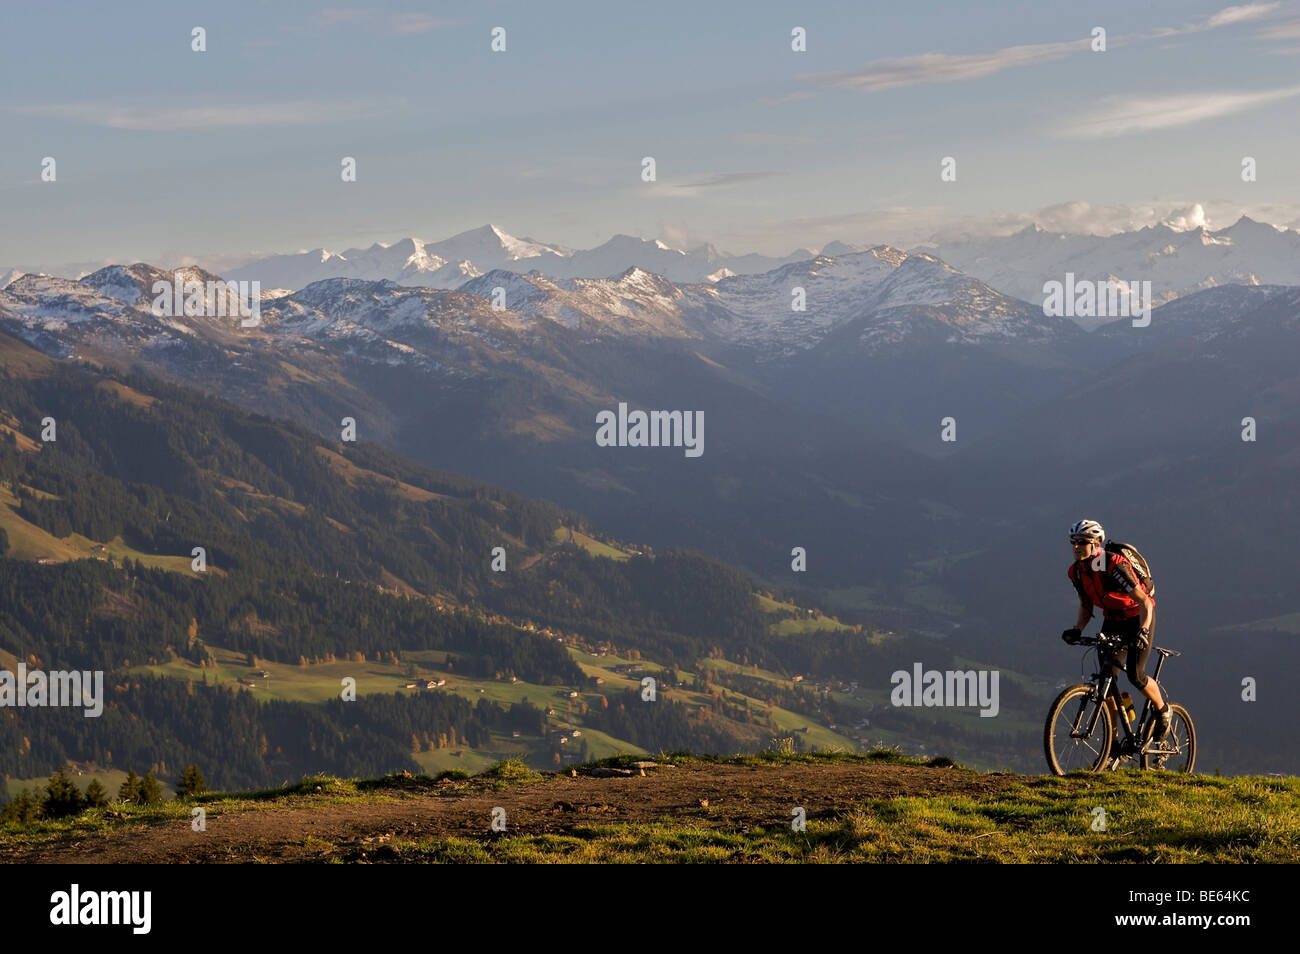 Mountainbiker at Hohe Salve mountain, the Grossvenediger mountain in the back, Tyrol, Austria, Europe Stock Photo